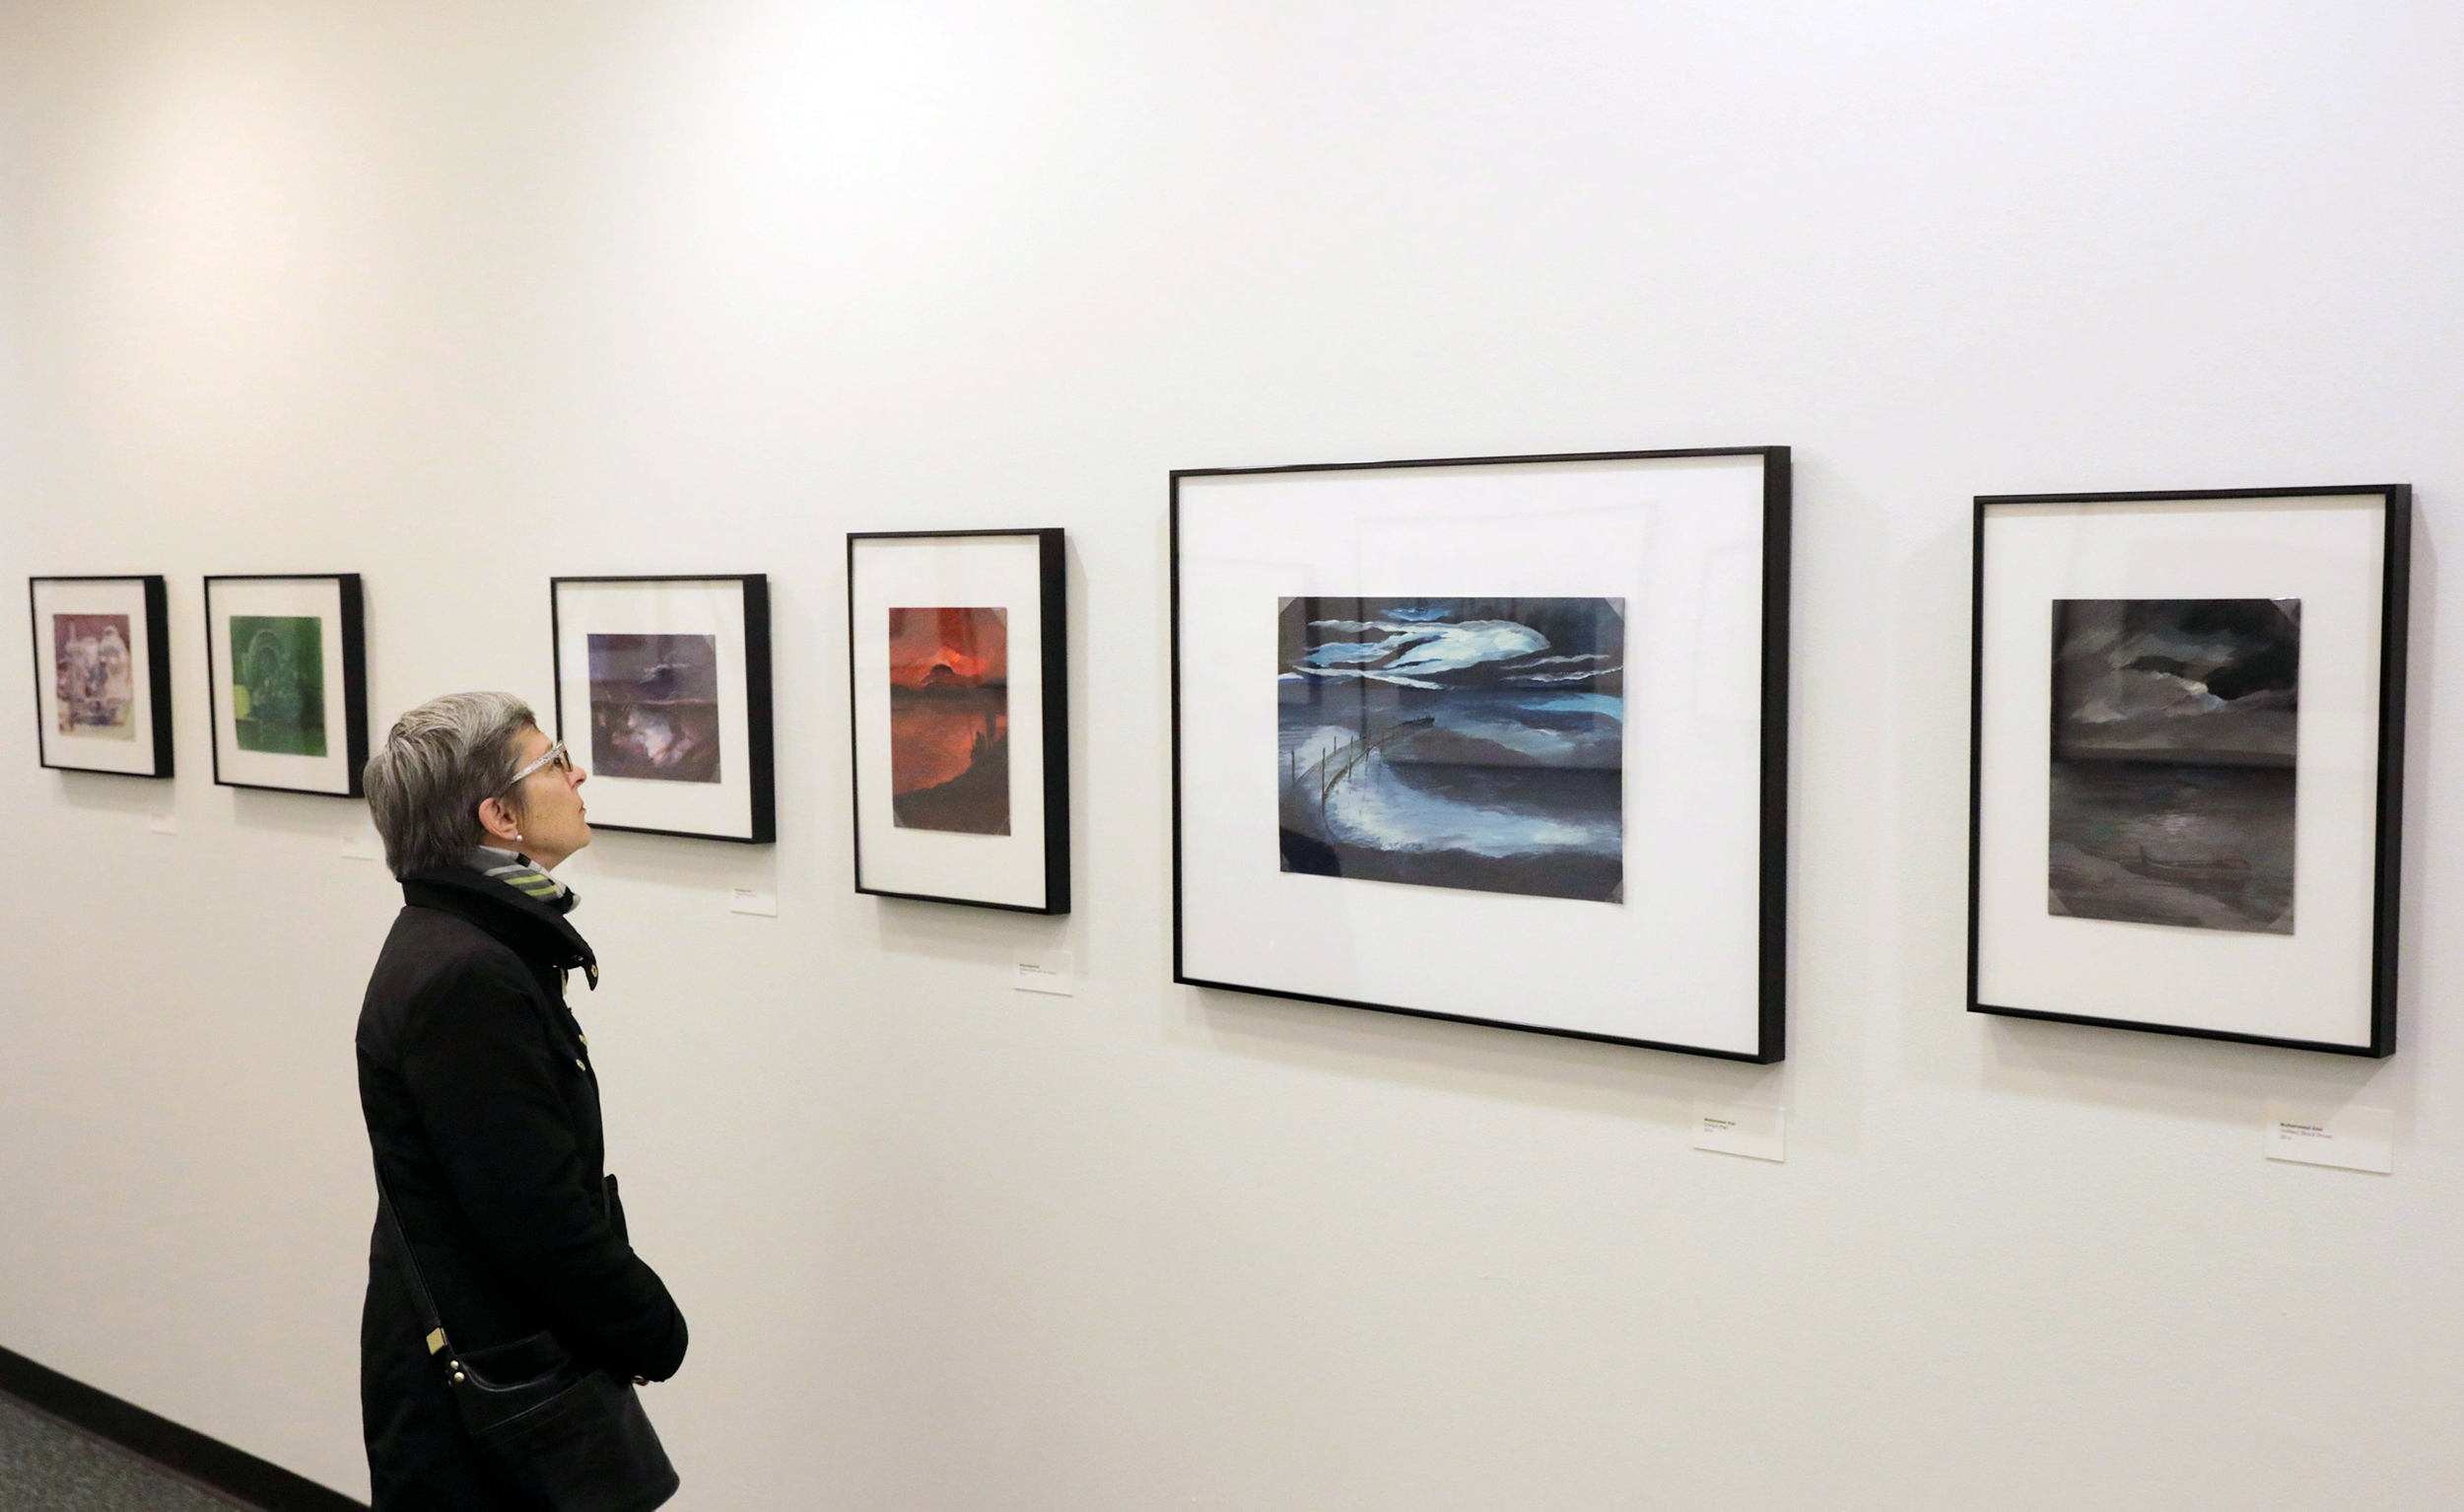 Image: A woman looks at paintings made by detainees at military facilities in Guantanamo Bay at the